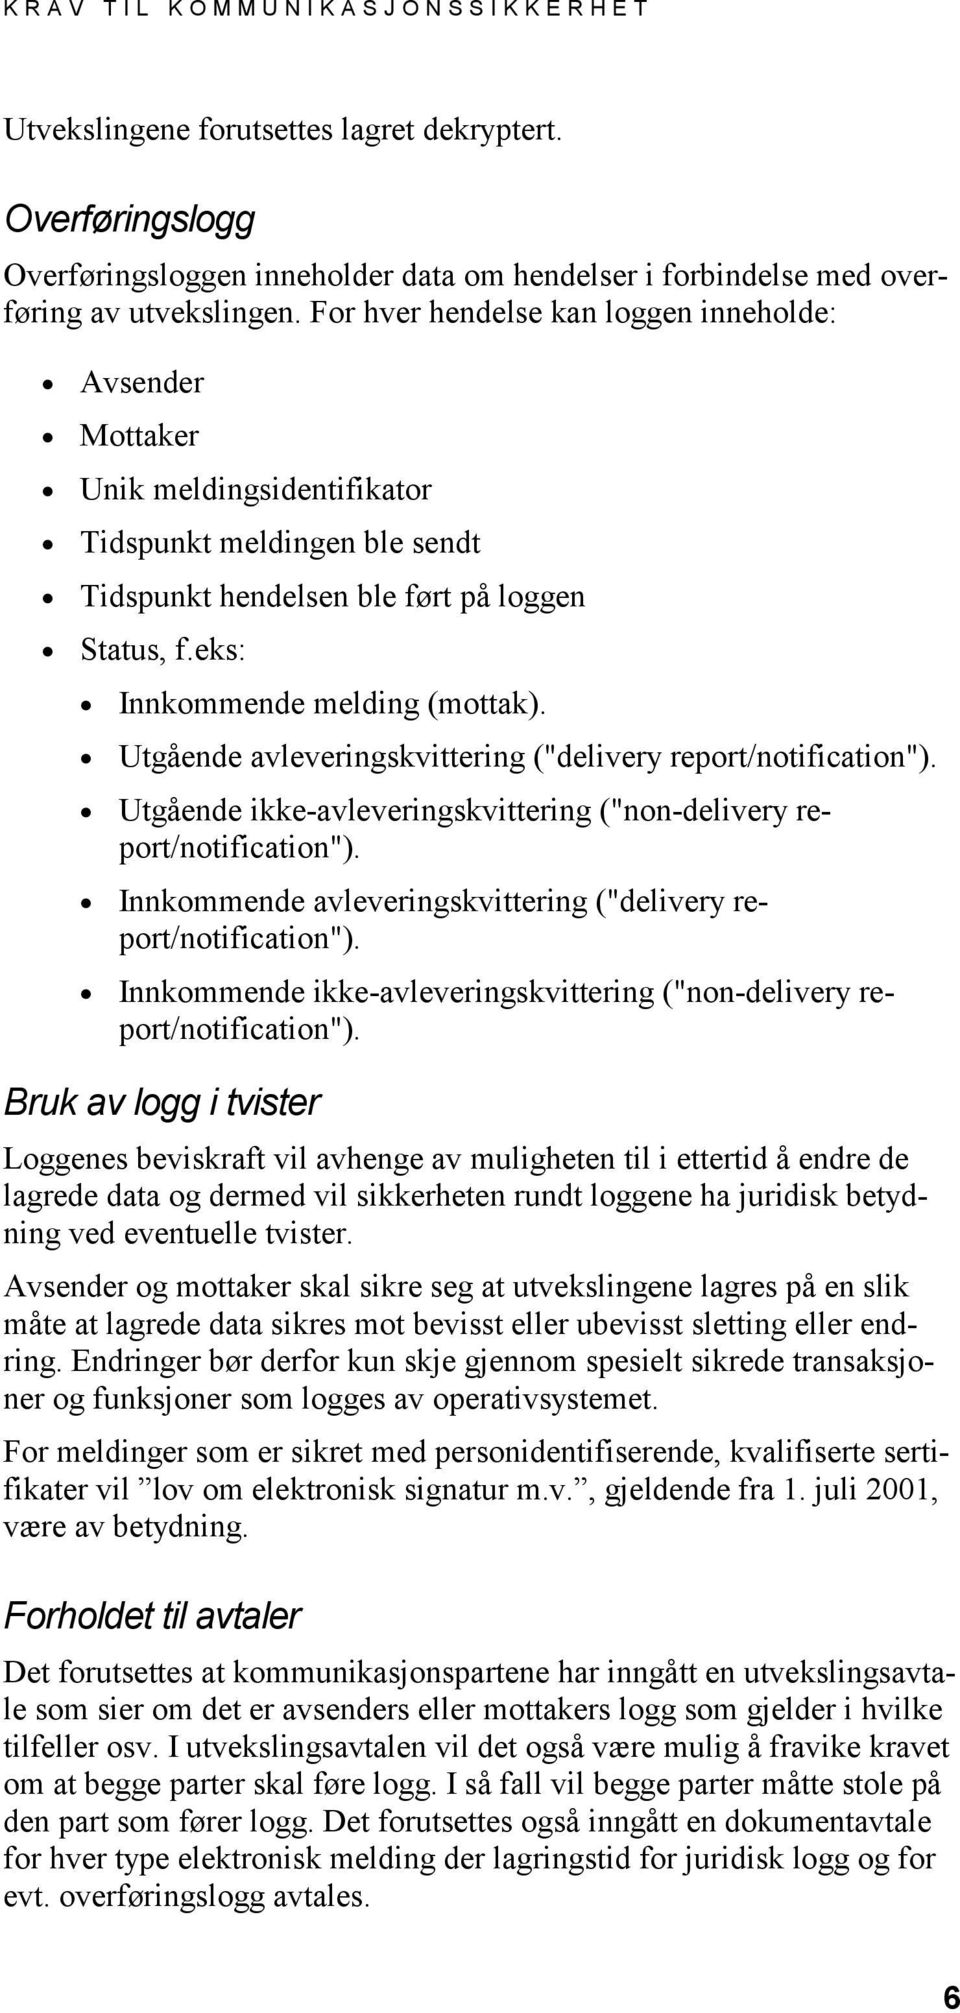 "Utgående avleveringskvittering (""delivery report/notification""). Utgående ikke-avleveringskvittering (""non-delivery report/notification"")."